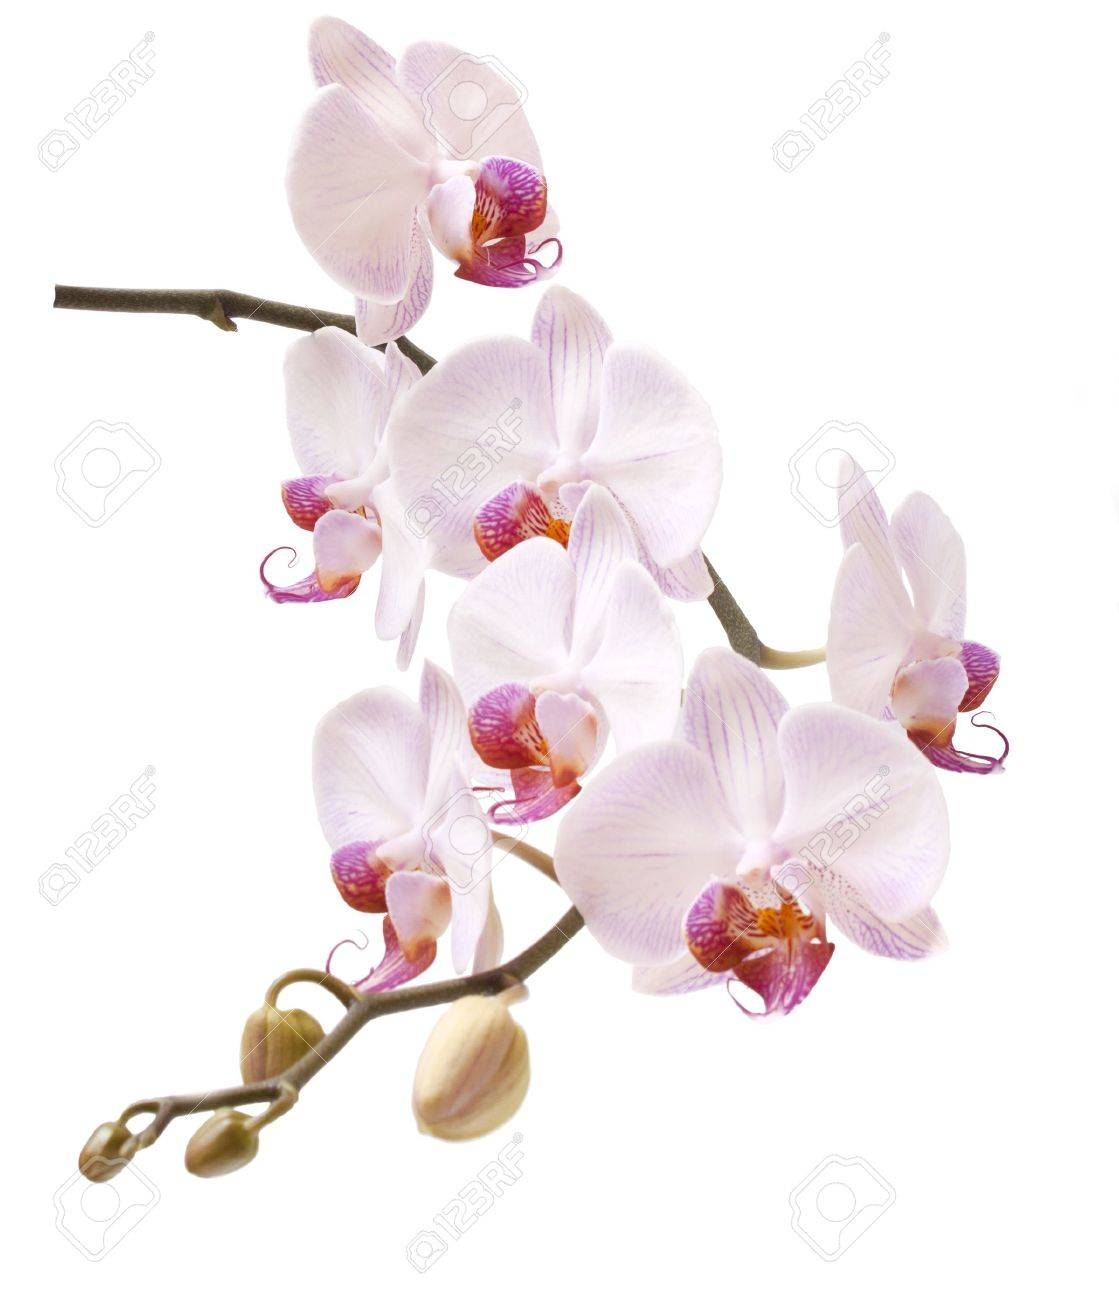 Beautiful, delicate an exotic flower on a white background. Stock Photo - 7729886